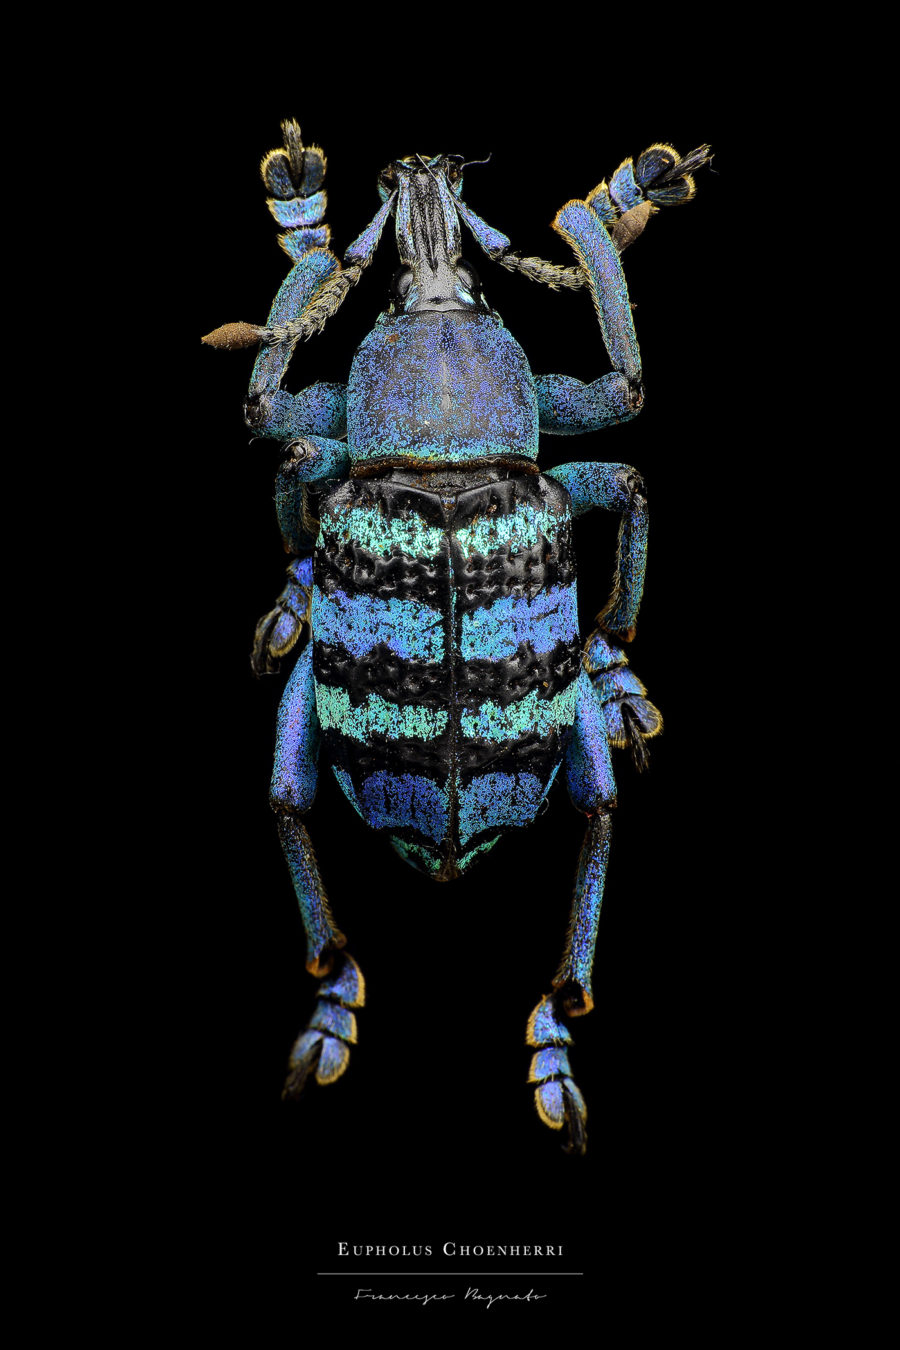 Beautiful Pictures of Colorful Insects 5 Beautiful Pictures of Colorful Insects